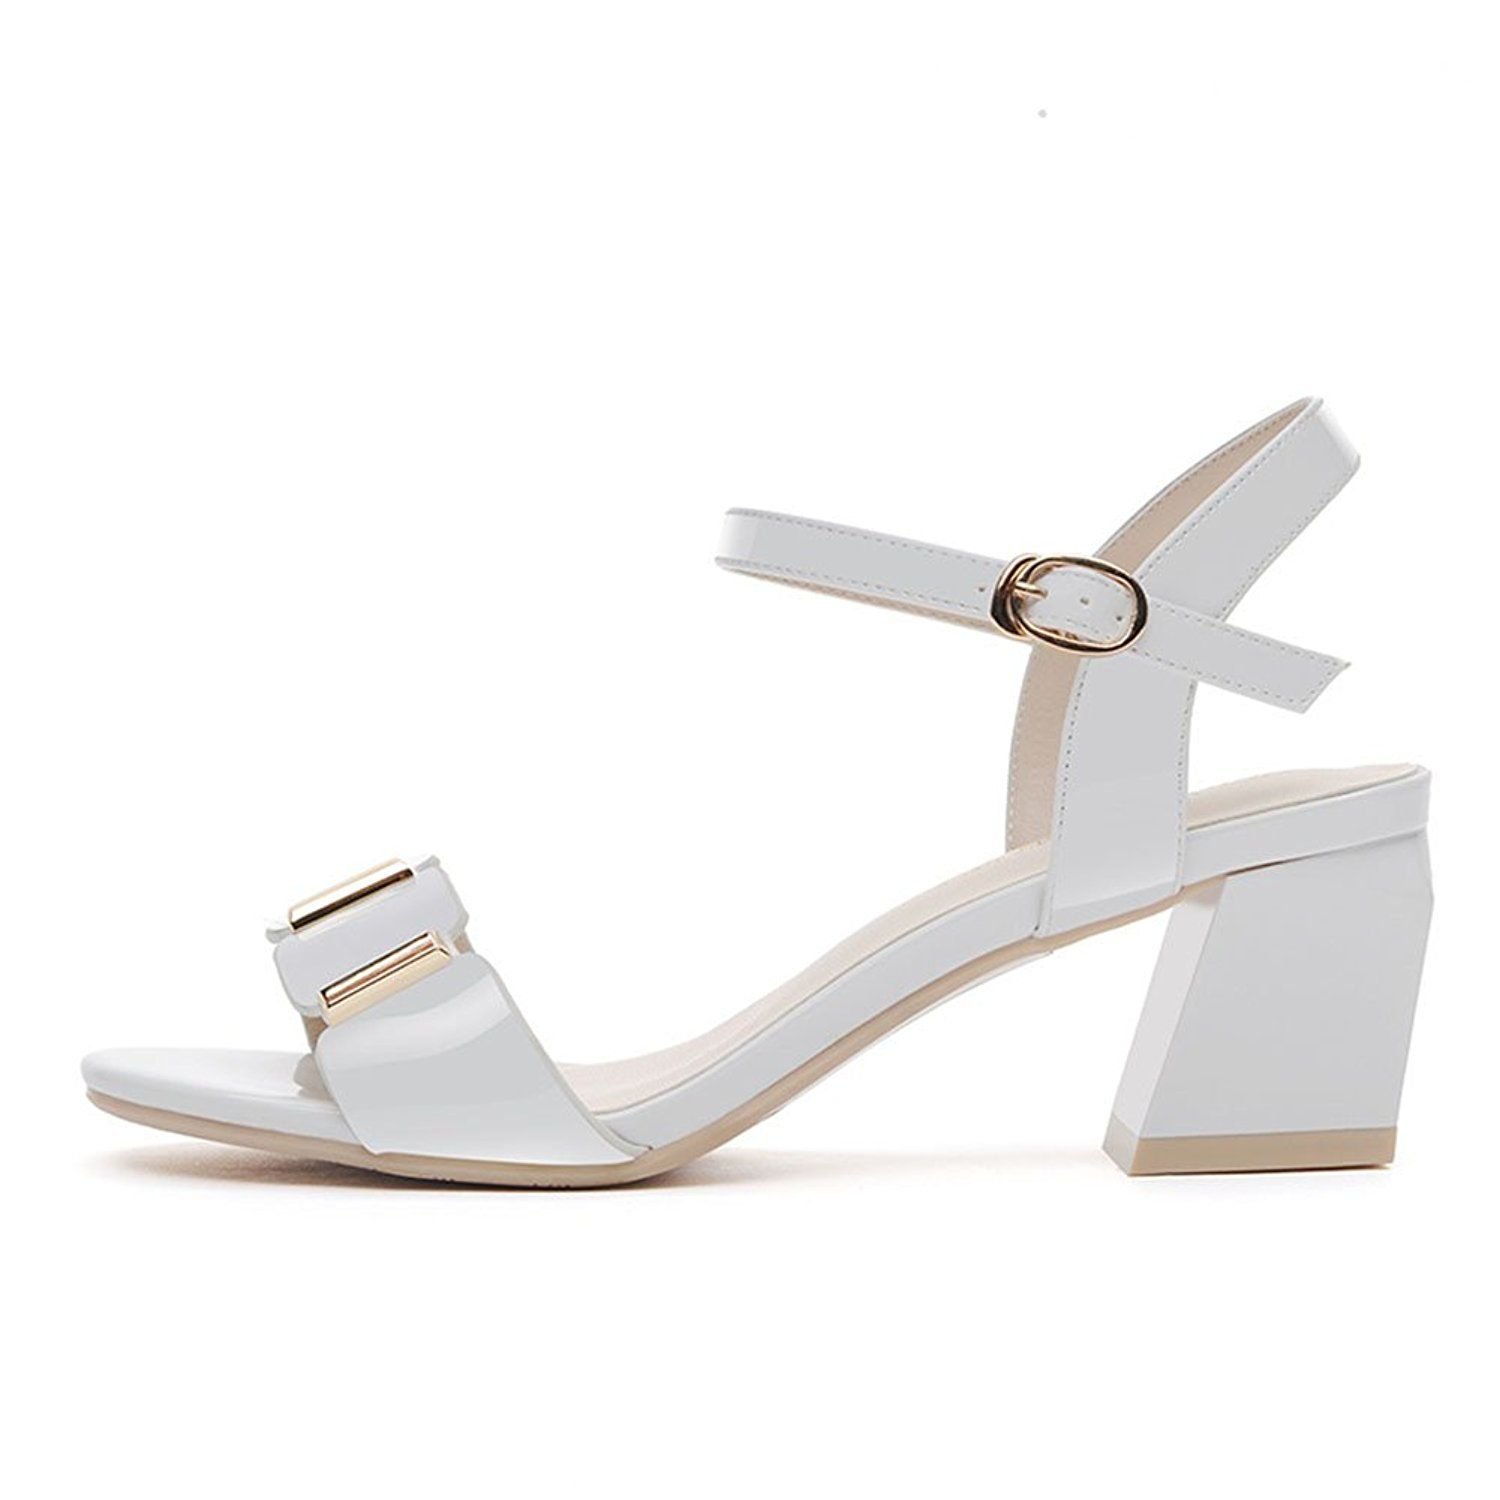 504ef19465e2e3 Summer Thick With OpenToed Metal Clasp Sandals Outdoor Woman LowHeeled Shoes  White -- Continue to the product at the image link.